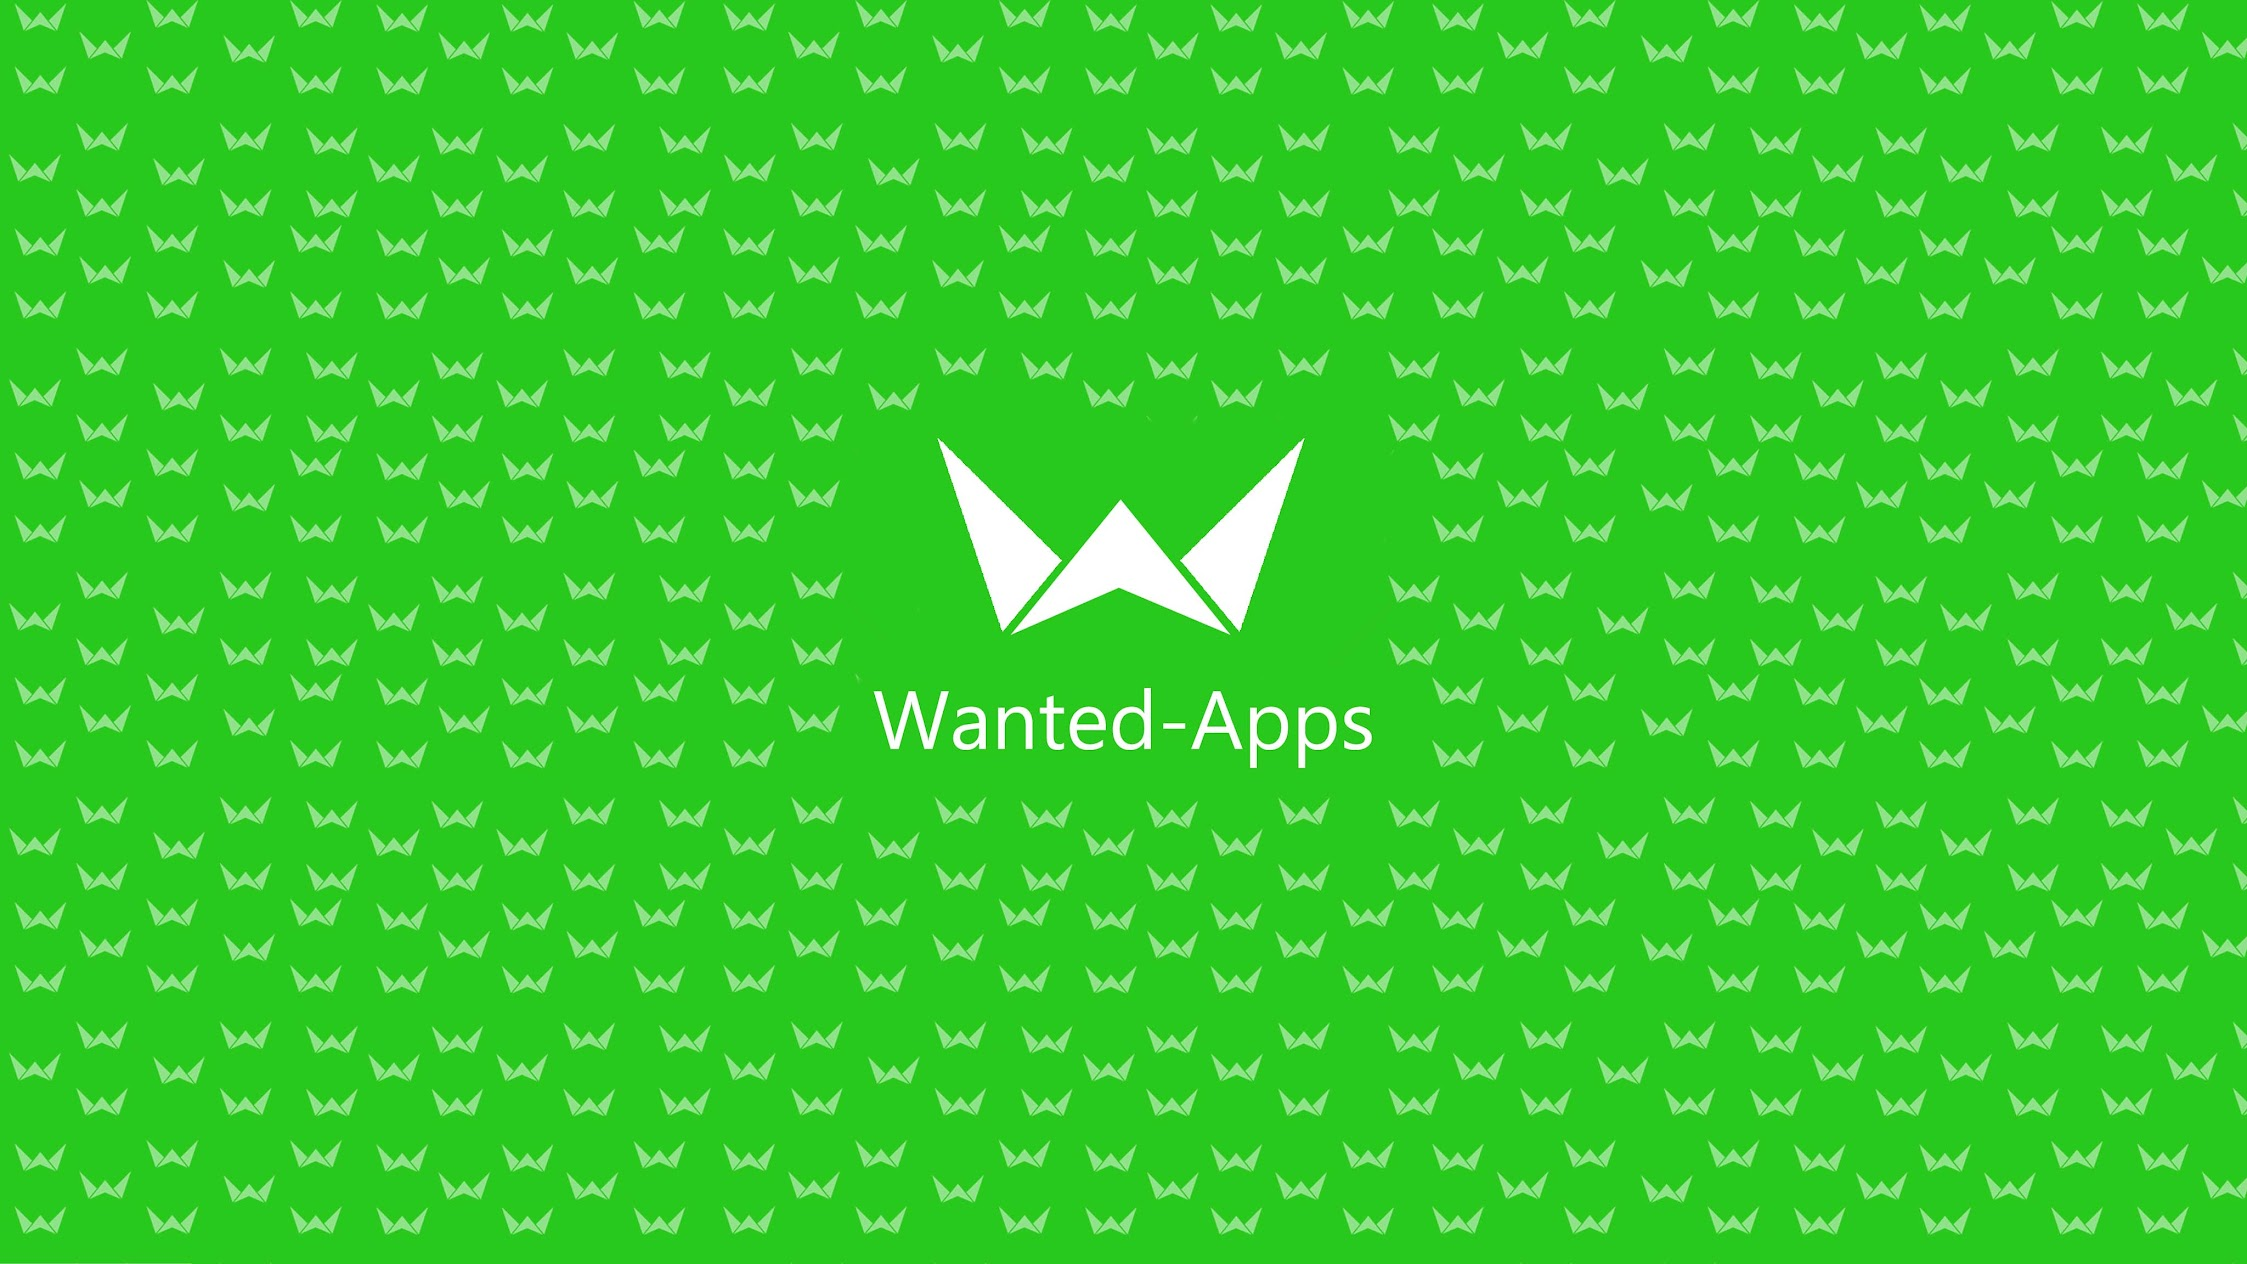 Wanted-Apps